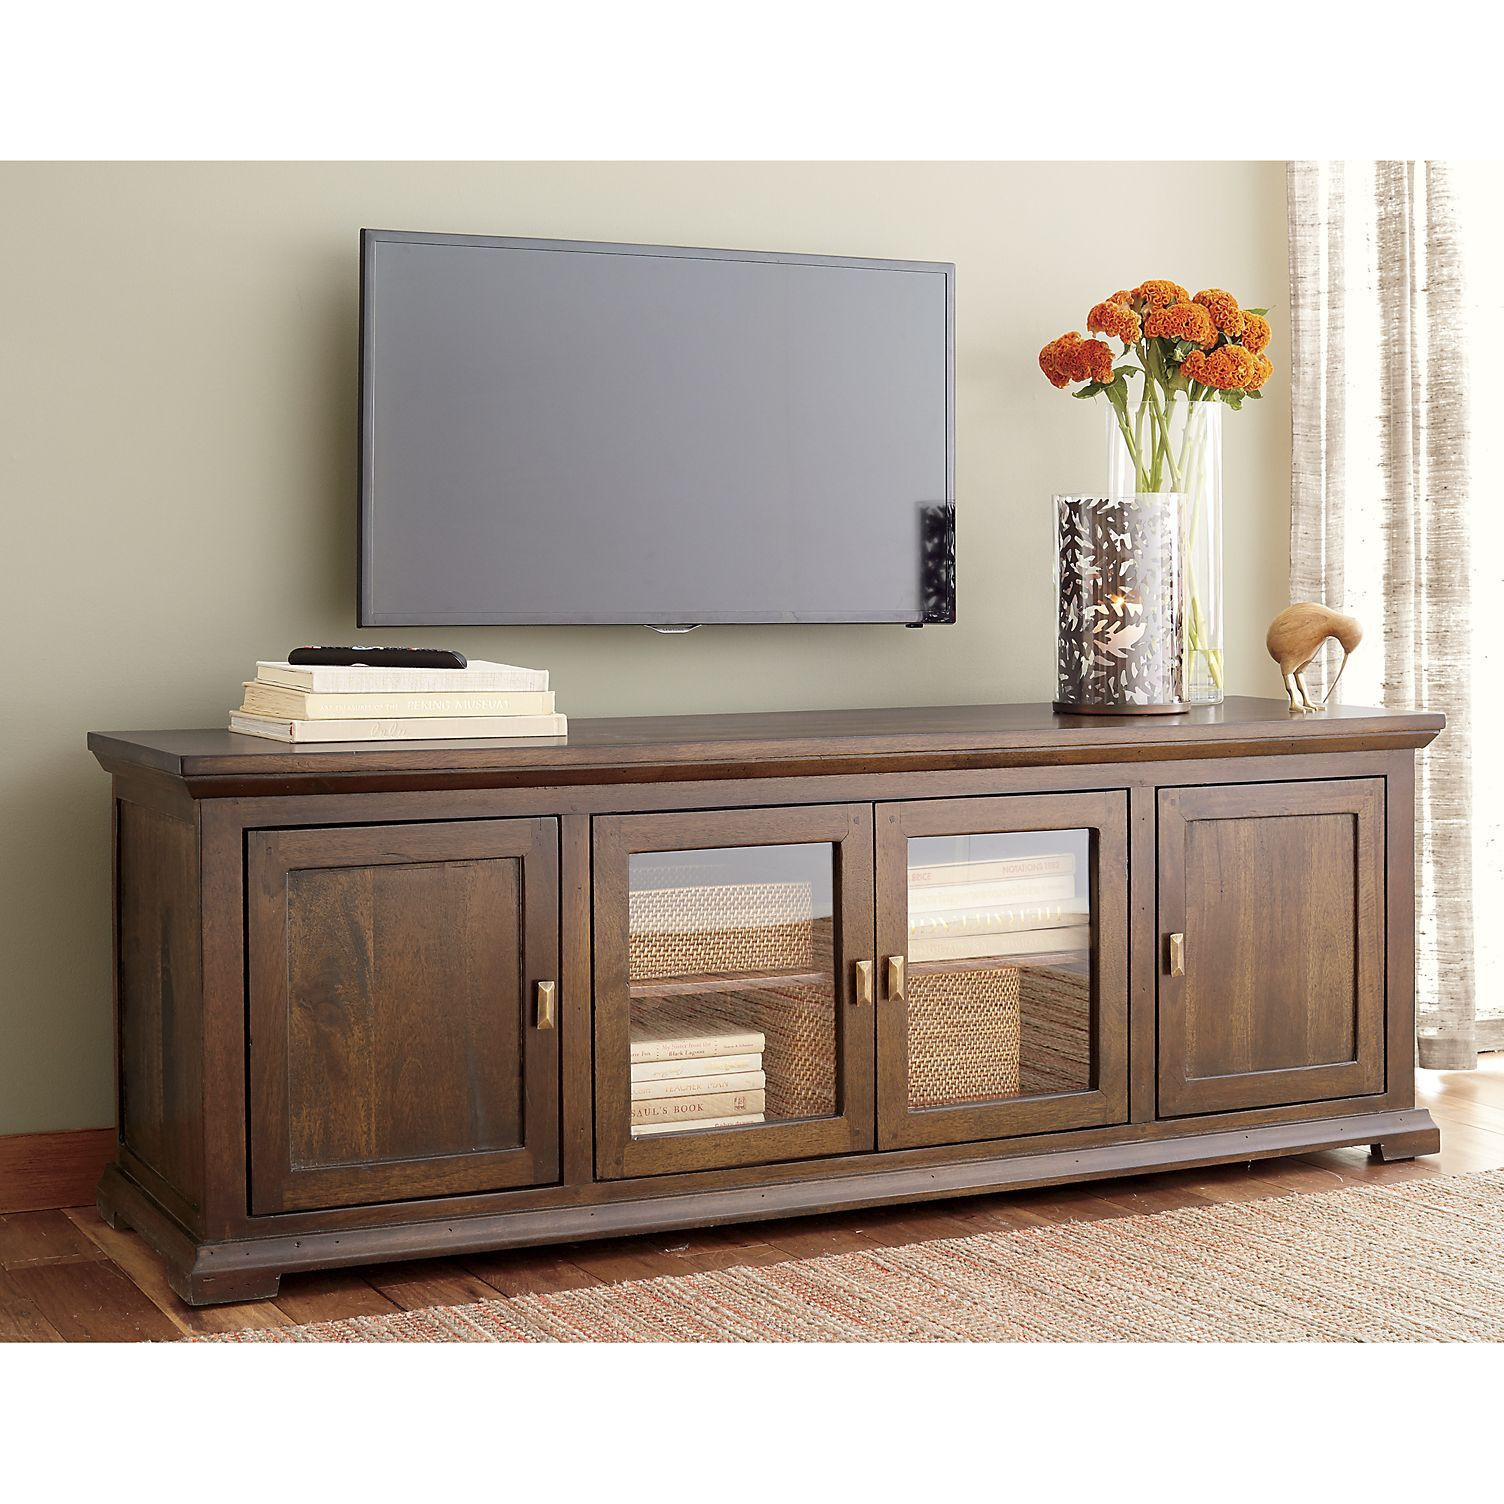 Crowne 72 Media Console Roomy Inch Has A Central Double Door Gl Cabinet With One Adjule Shelf Flanking Cabinets Open To